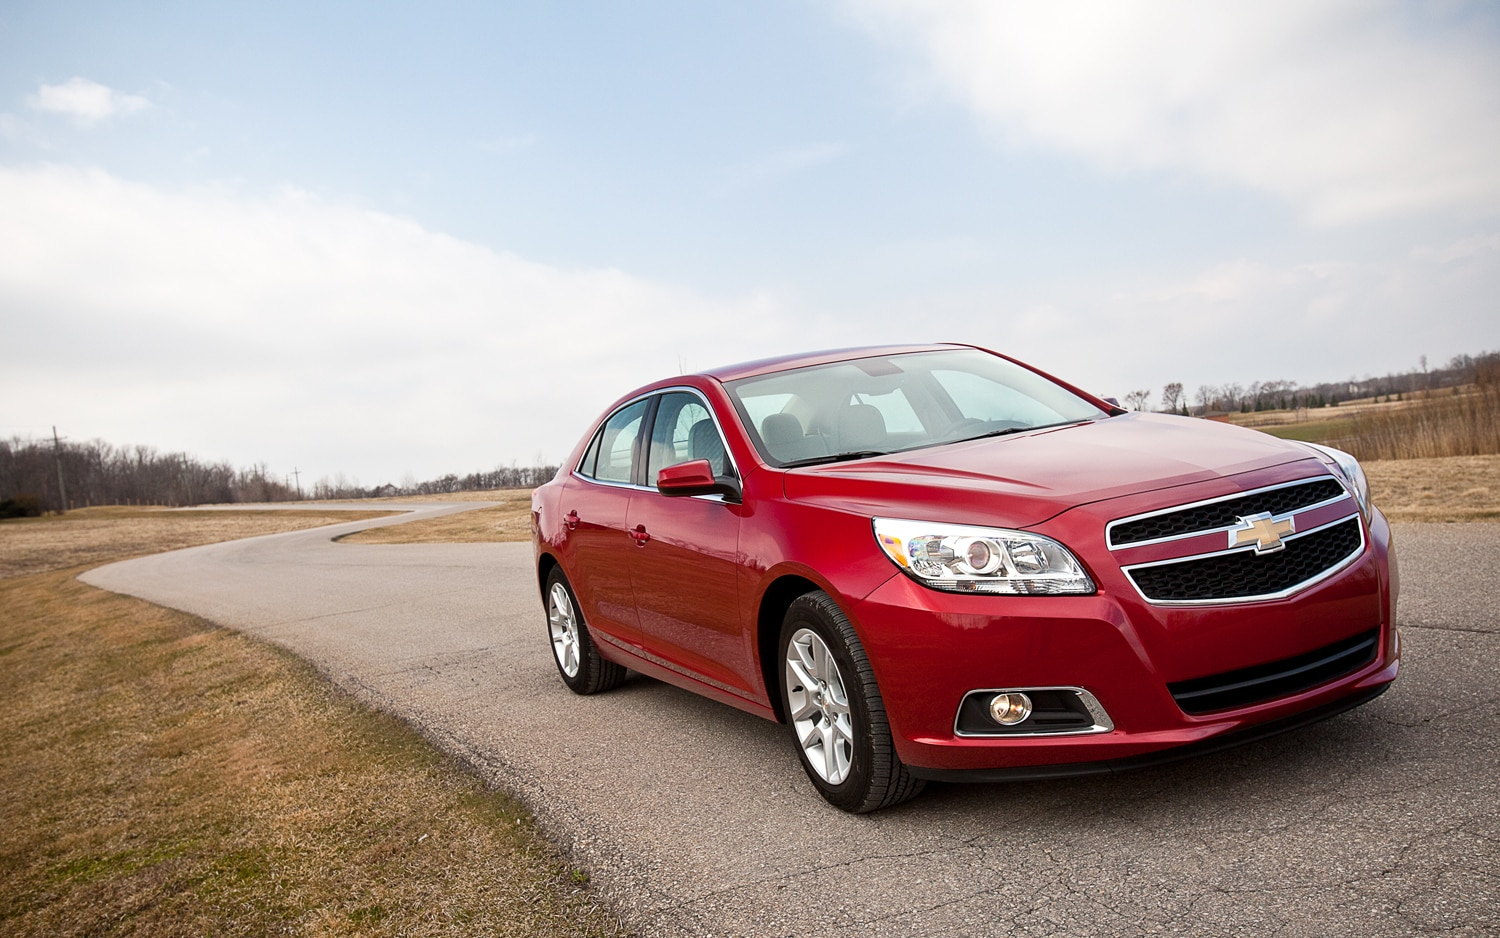 2013 Chevrolet Malibu Eco Front Right View1